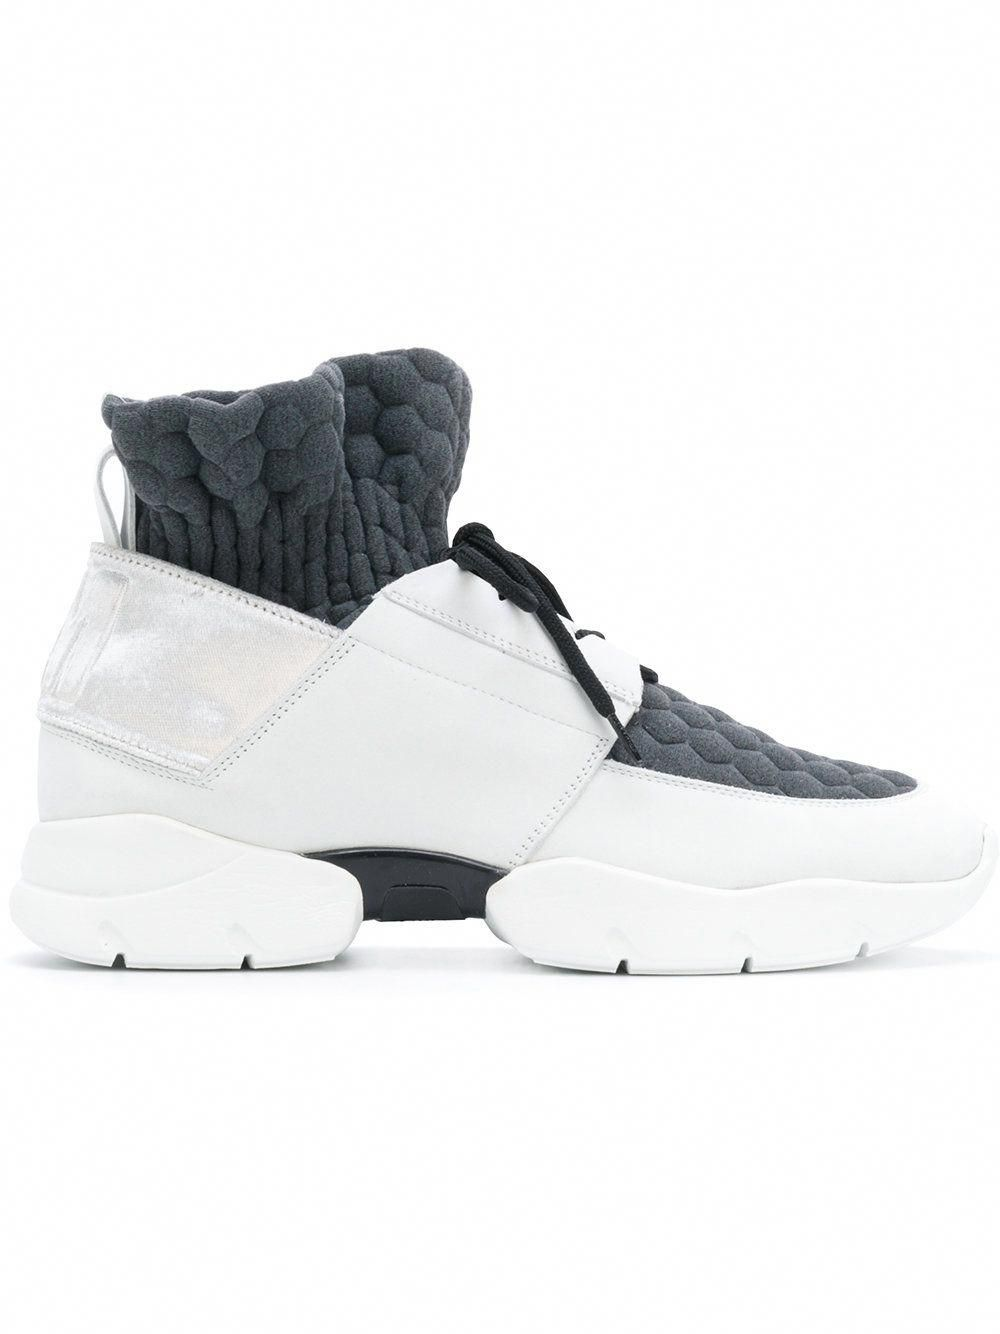 b2b6c828e3 MSGM sock insert sneakers #Sneakers | Sneakers | White leather shoes ...